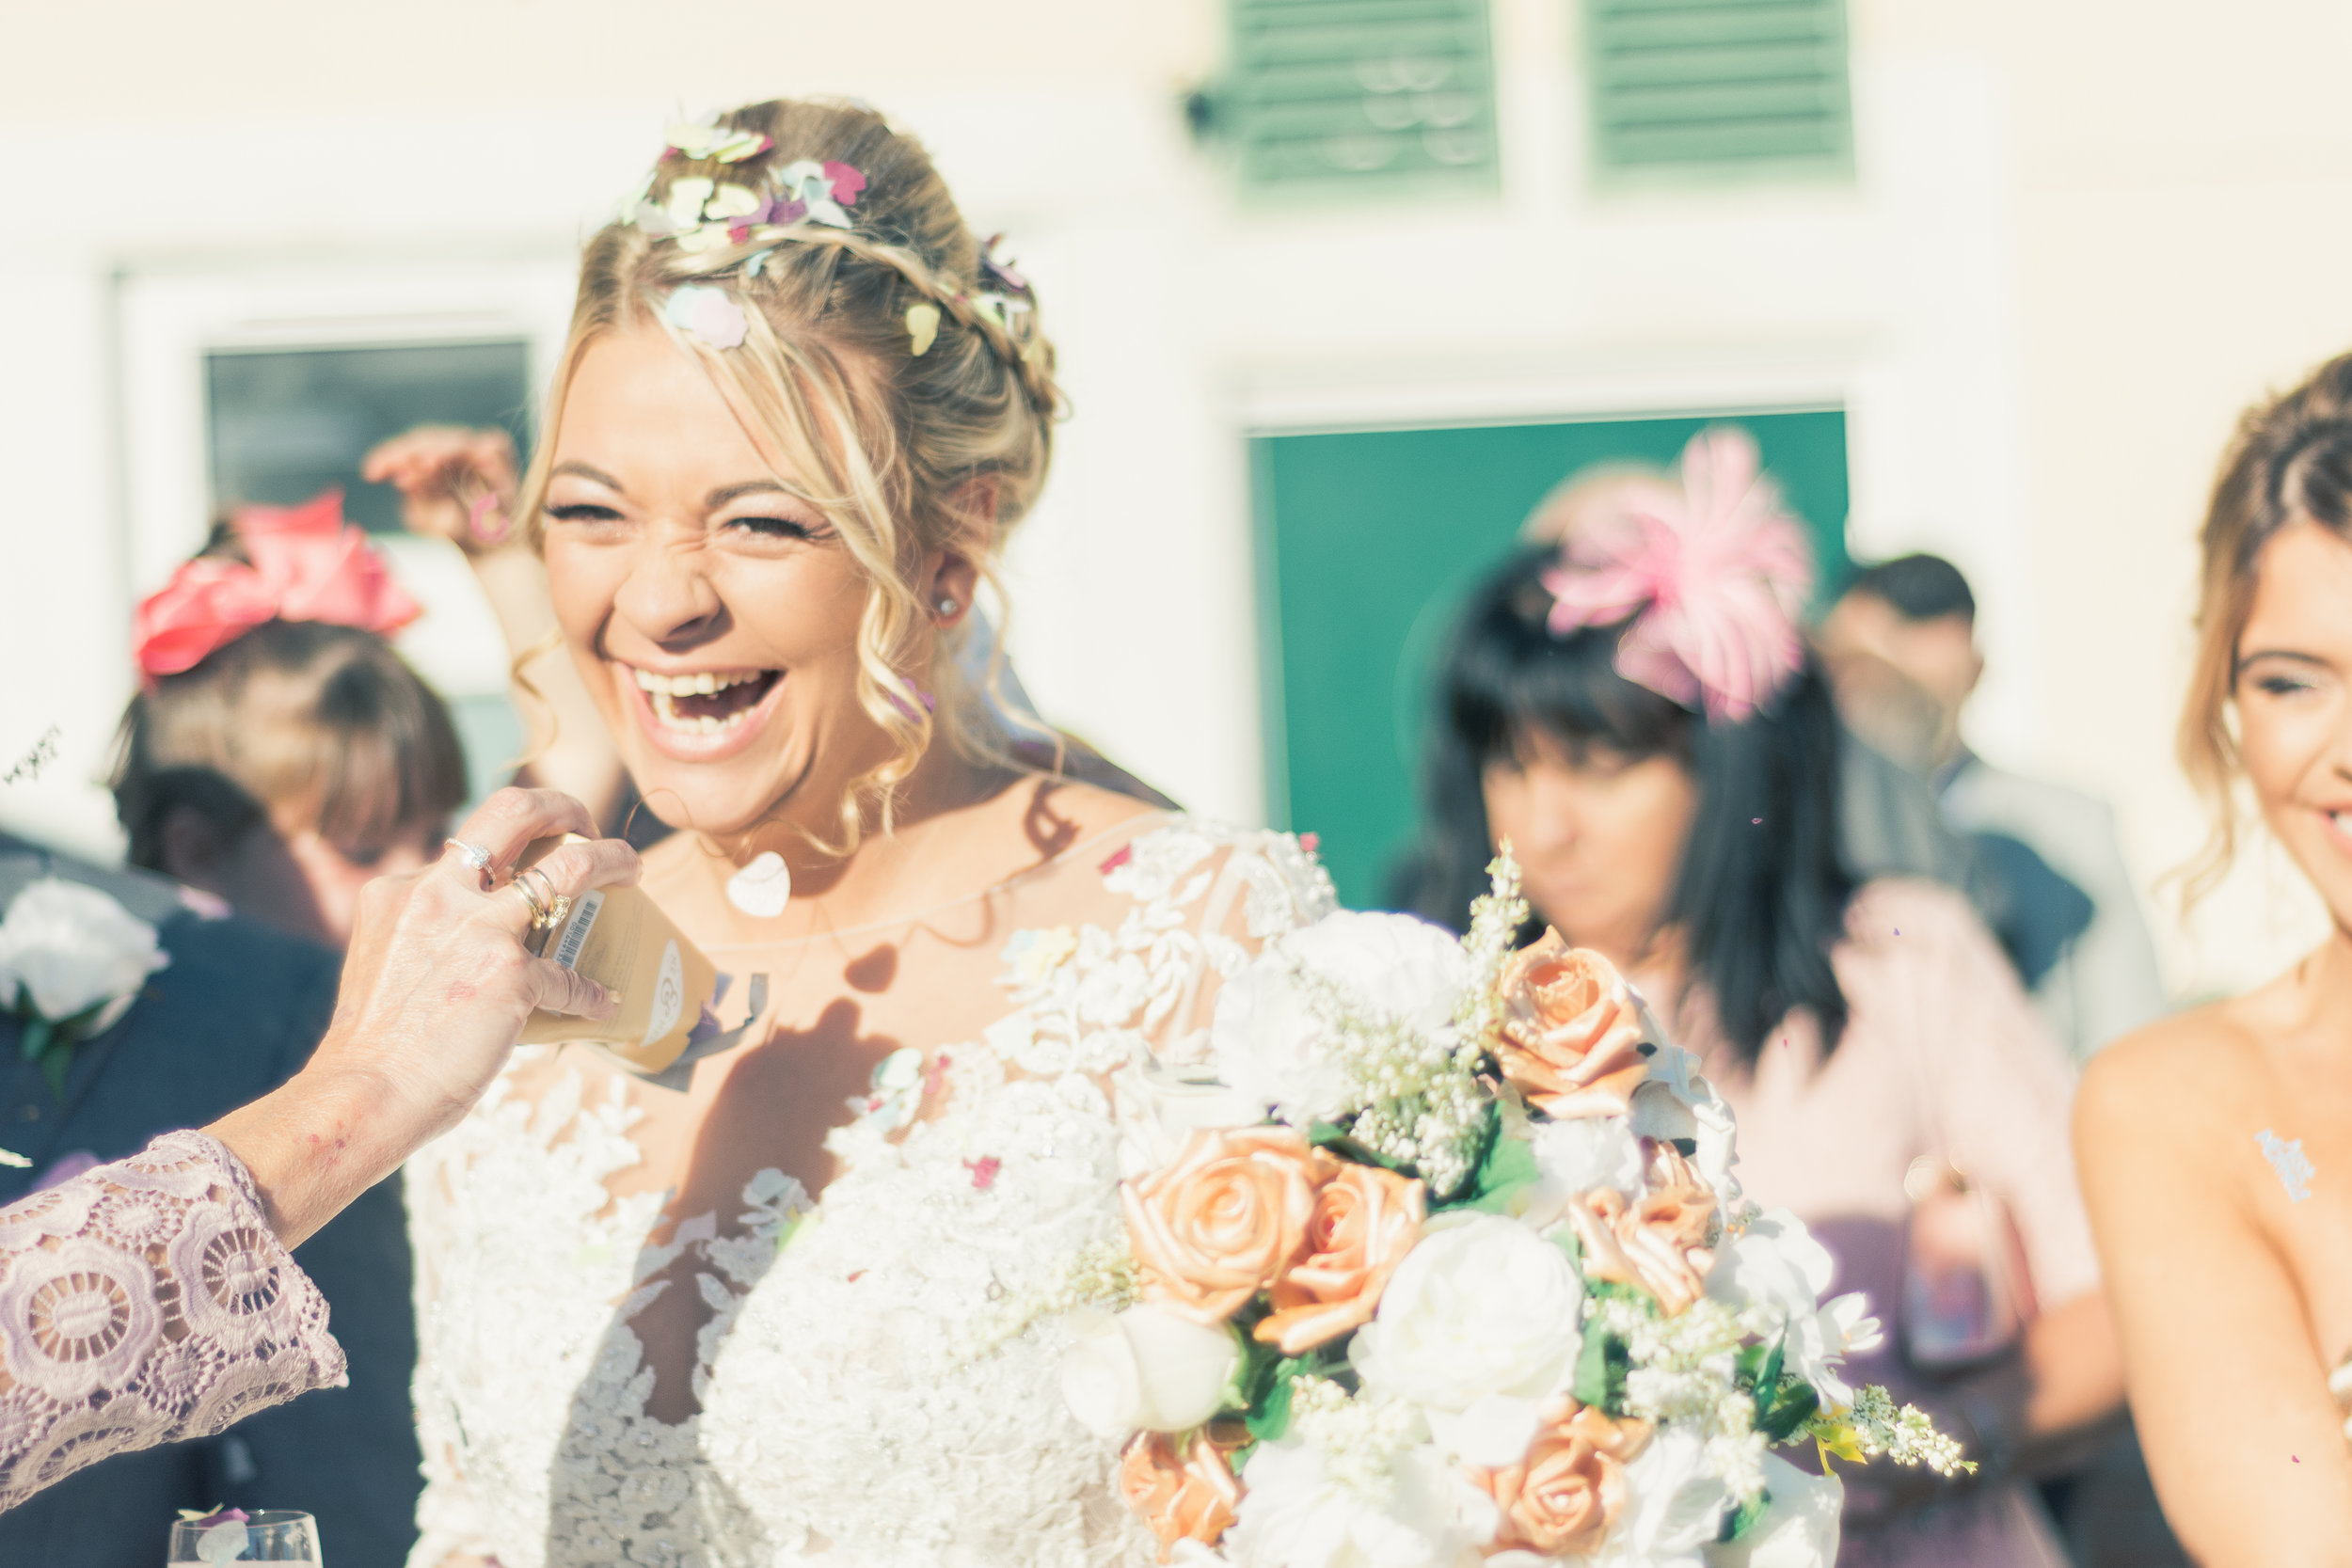 - We know that your wedding is as unique as you are, we don't tell you what style of images you want. We build up a relationship with our clients so that we can understand their style so we can better deliver the perfect coverage of their perfect day.Your wedding images, your way.